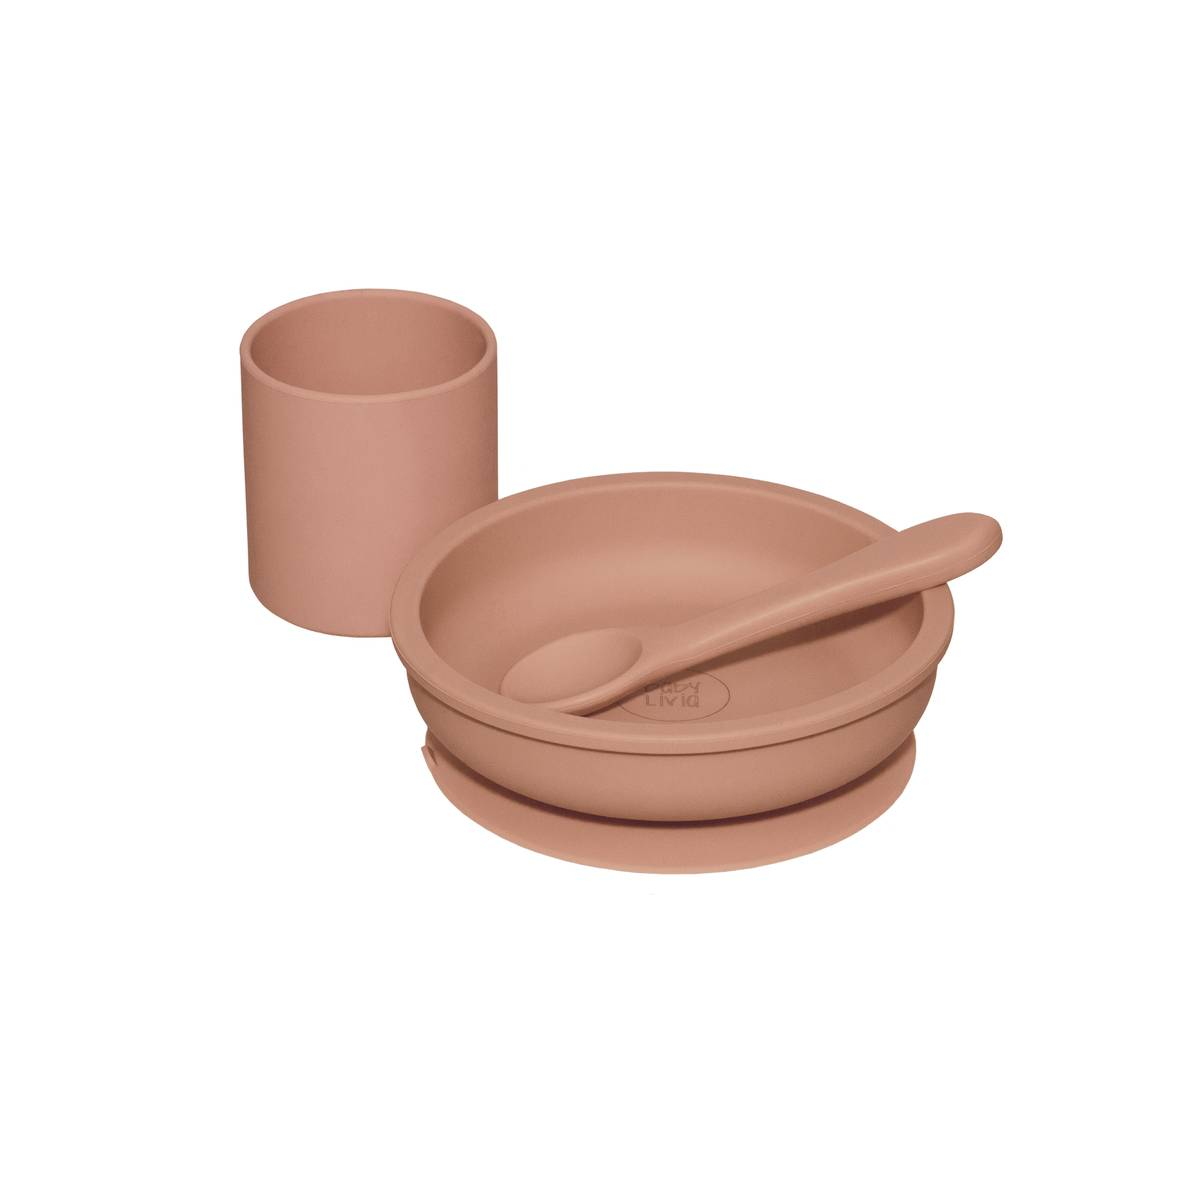 Silicone Bowl Muted Clay